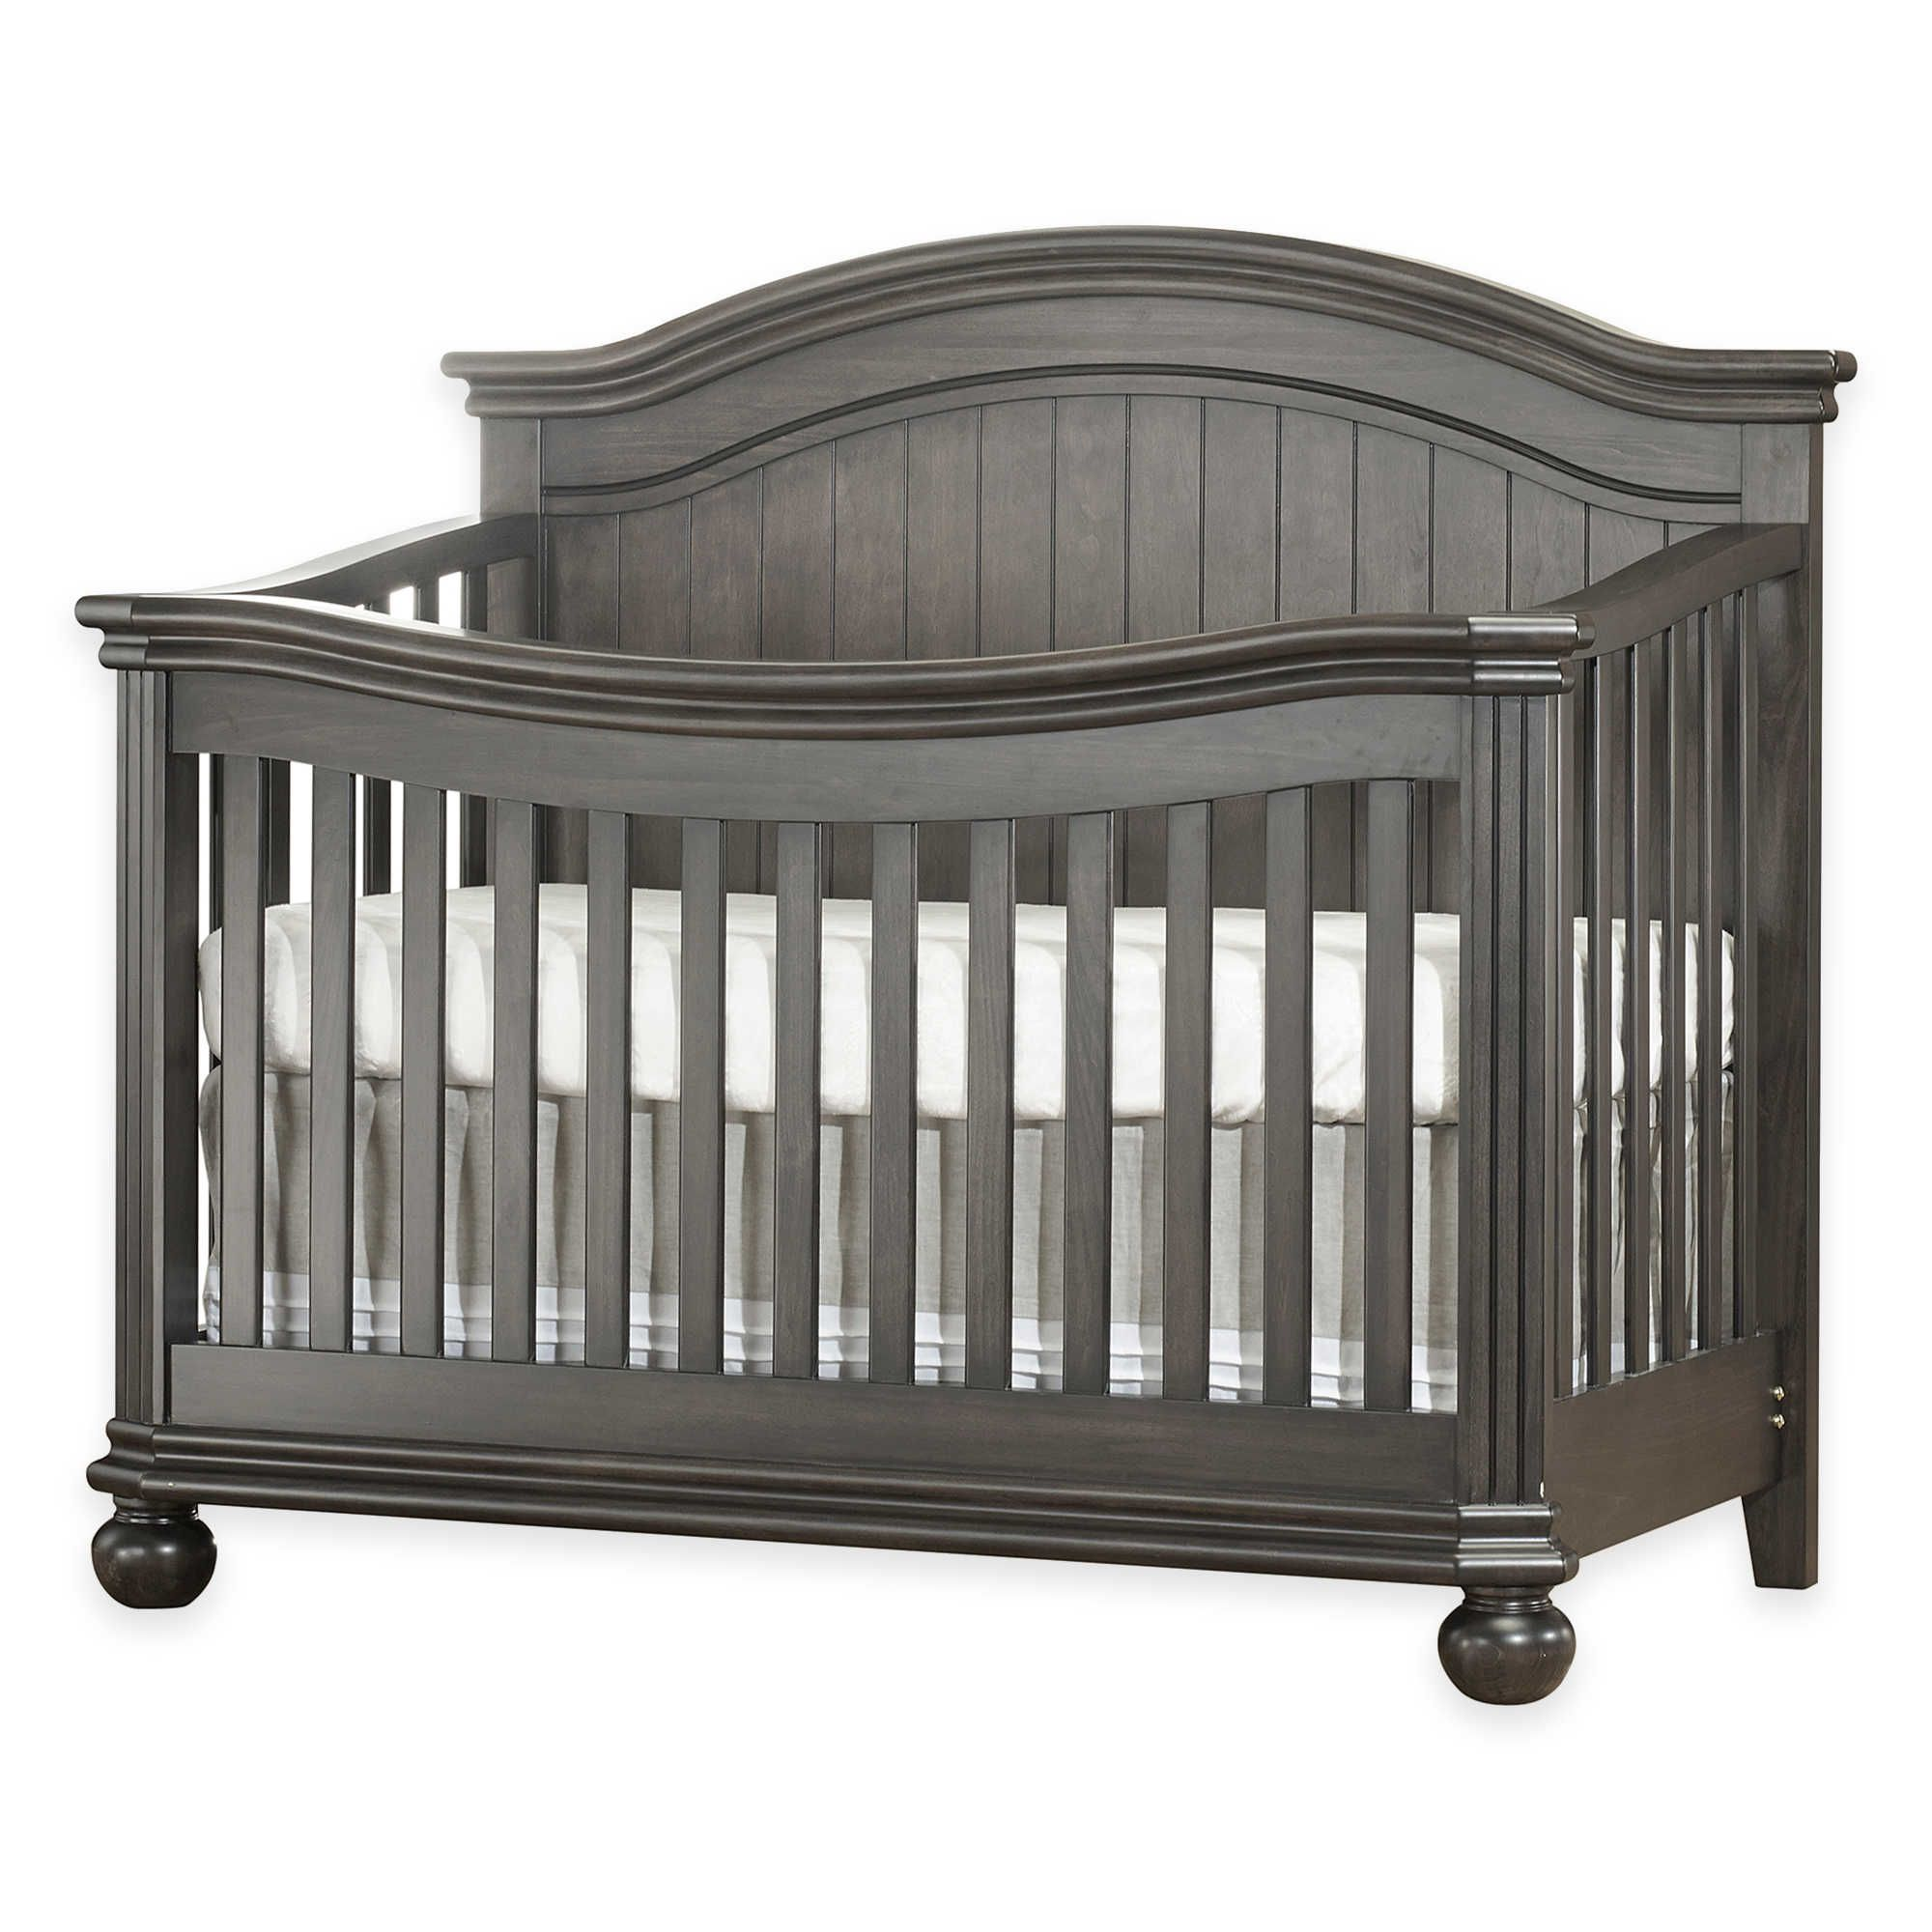 Vintage baby crib for sale - Cribs